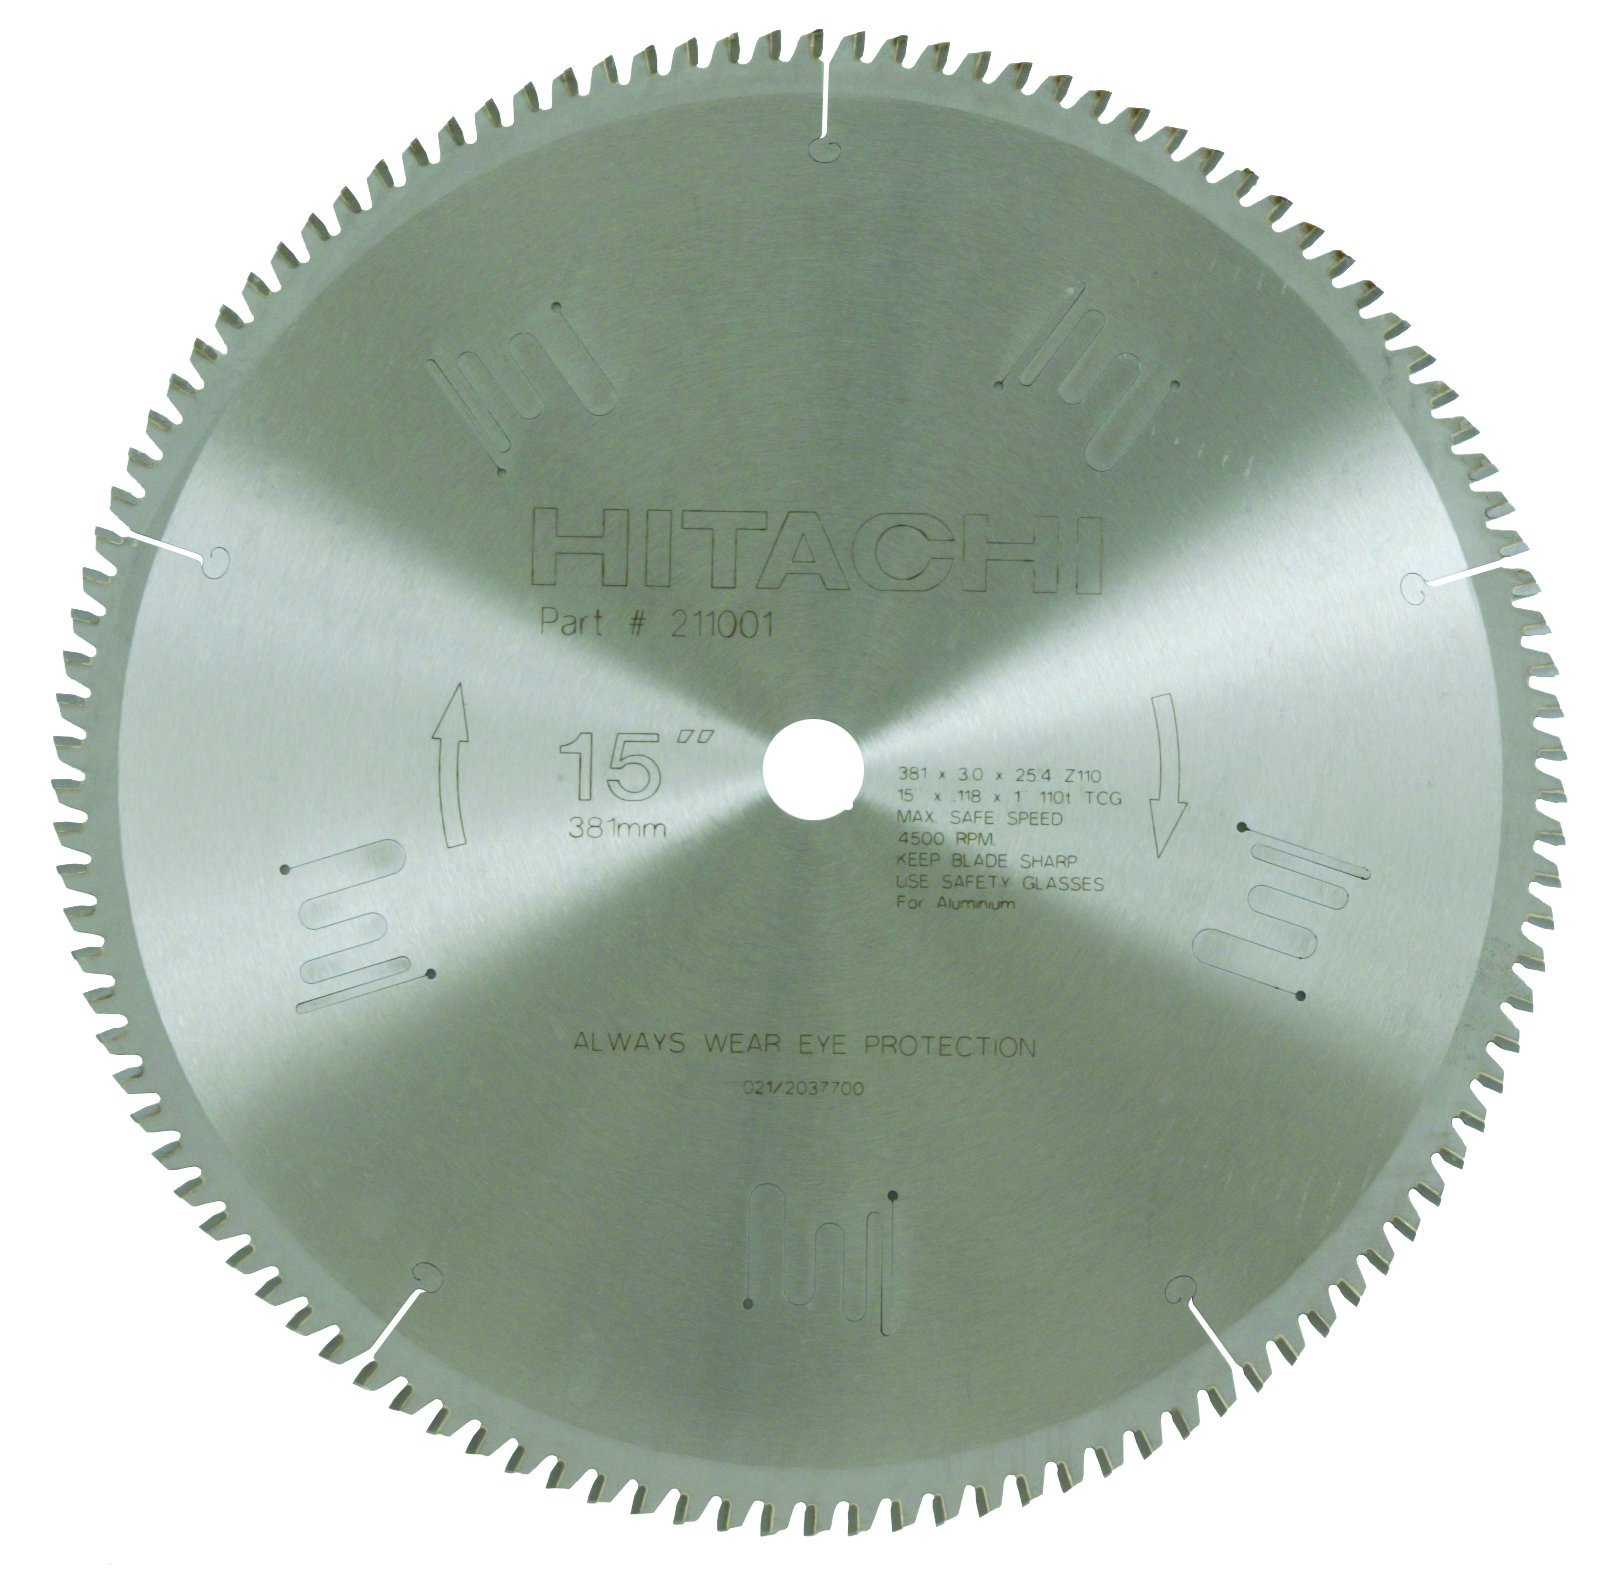 Hitachi 211001 110-Teeth Tungsten Carbide Tipped 15-Inch Triple Chip Saw Blade by Hitachi